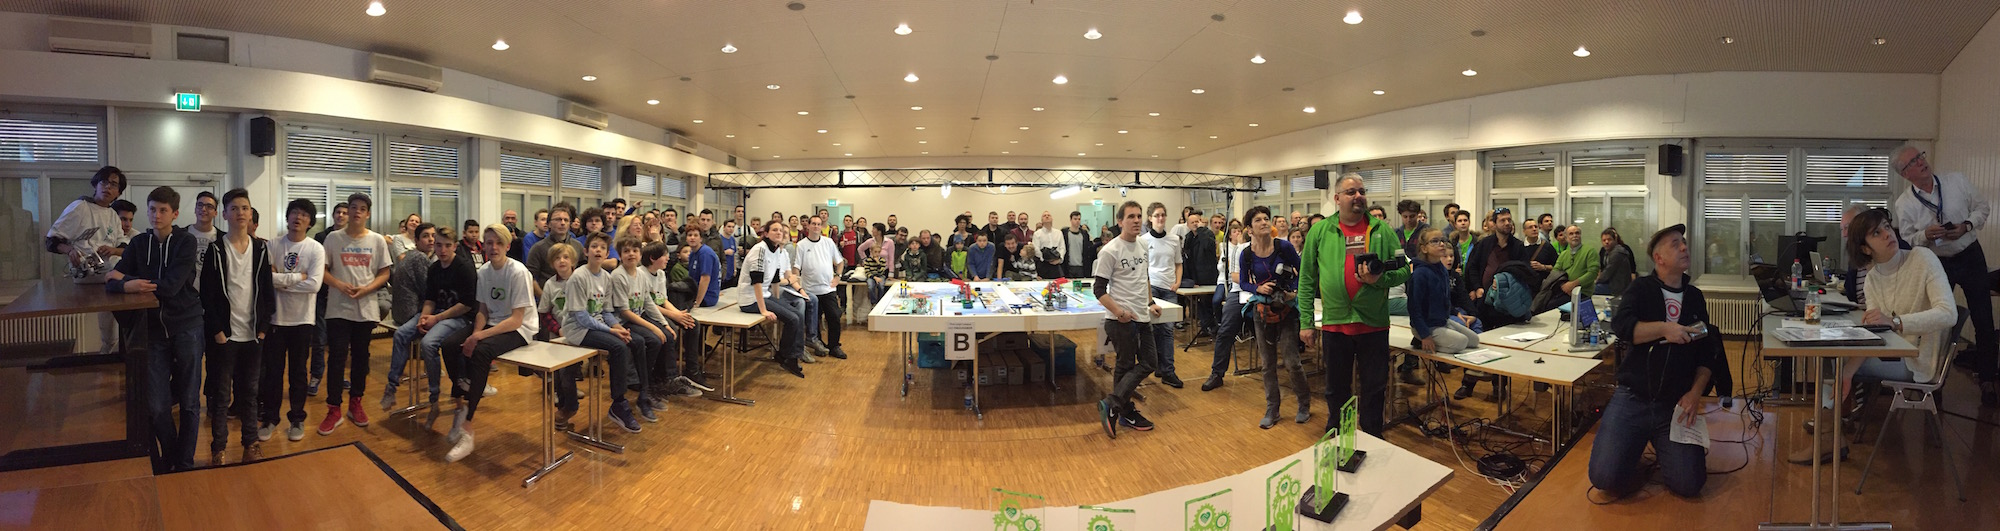 FLL2015-pano-low.jpg